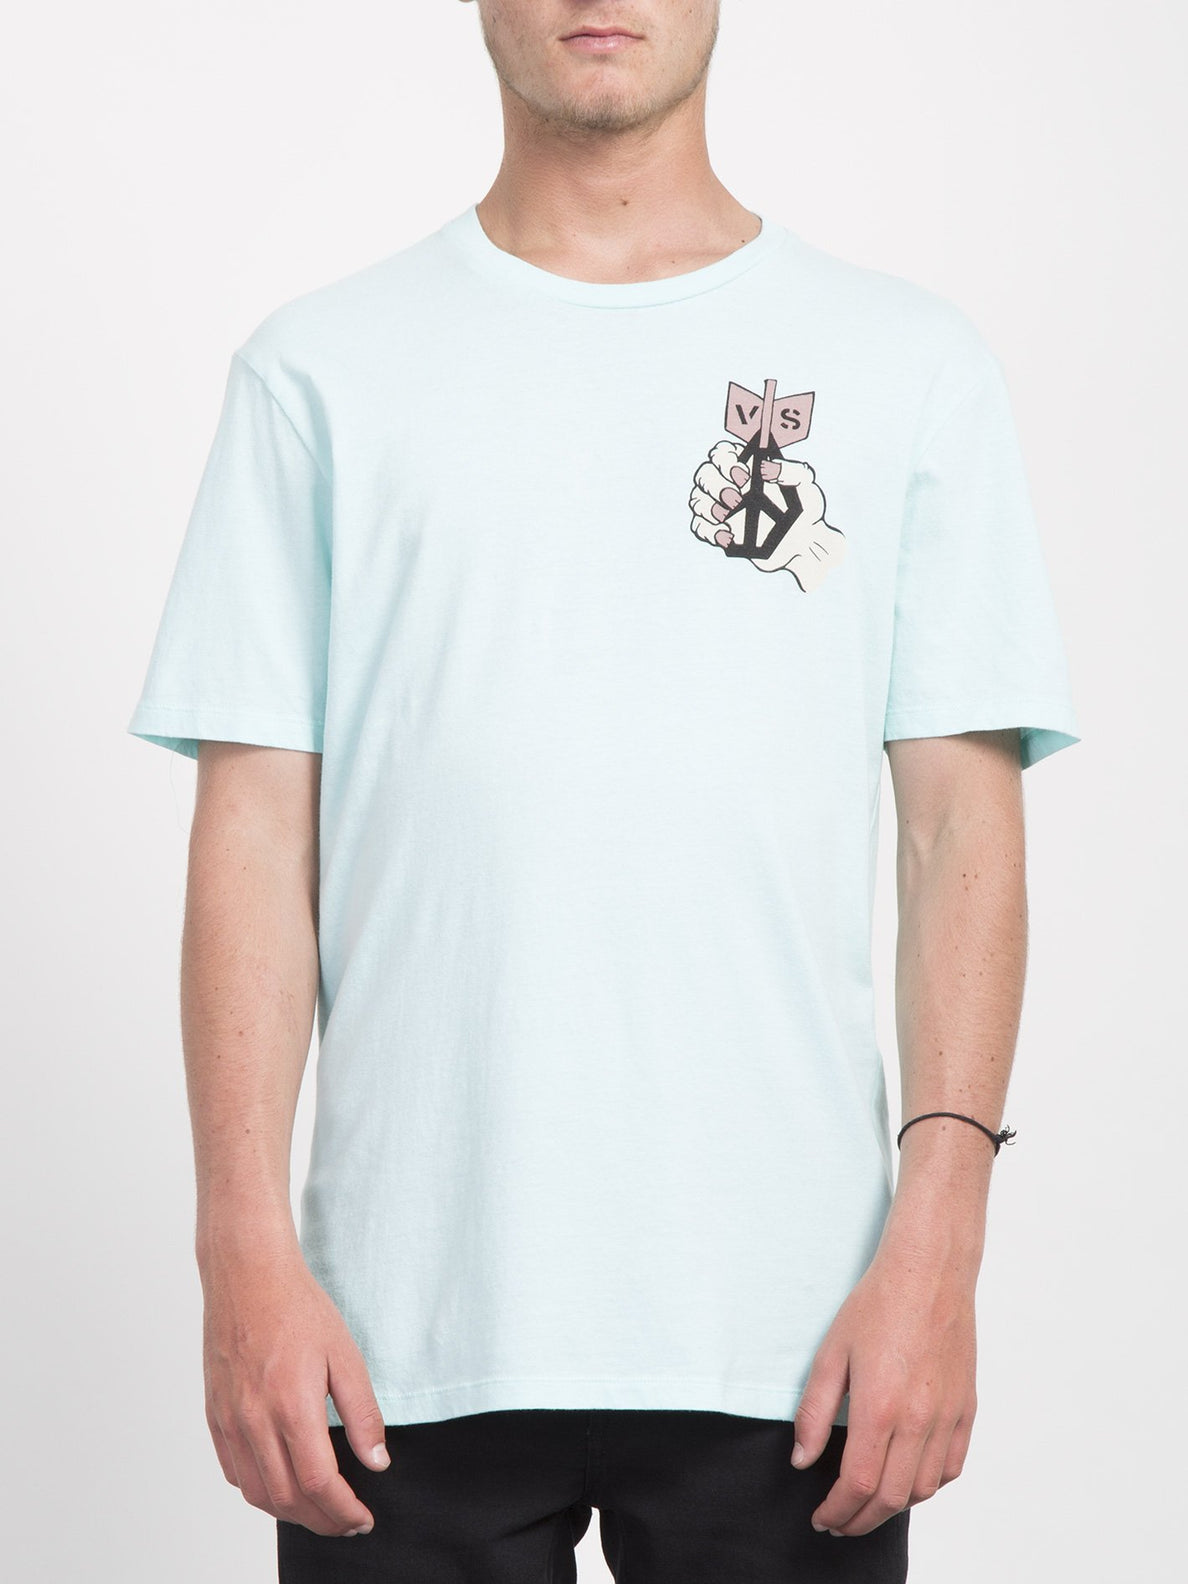 Check Two T-shirt  - Pale Aqua